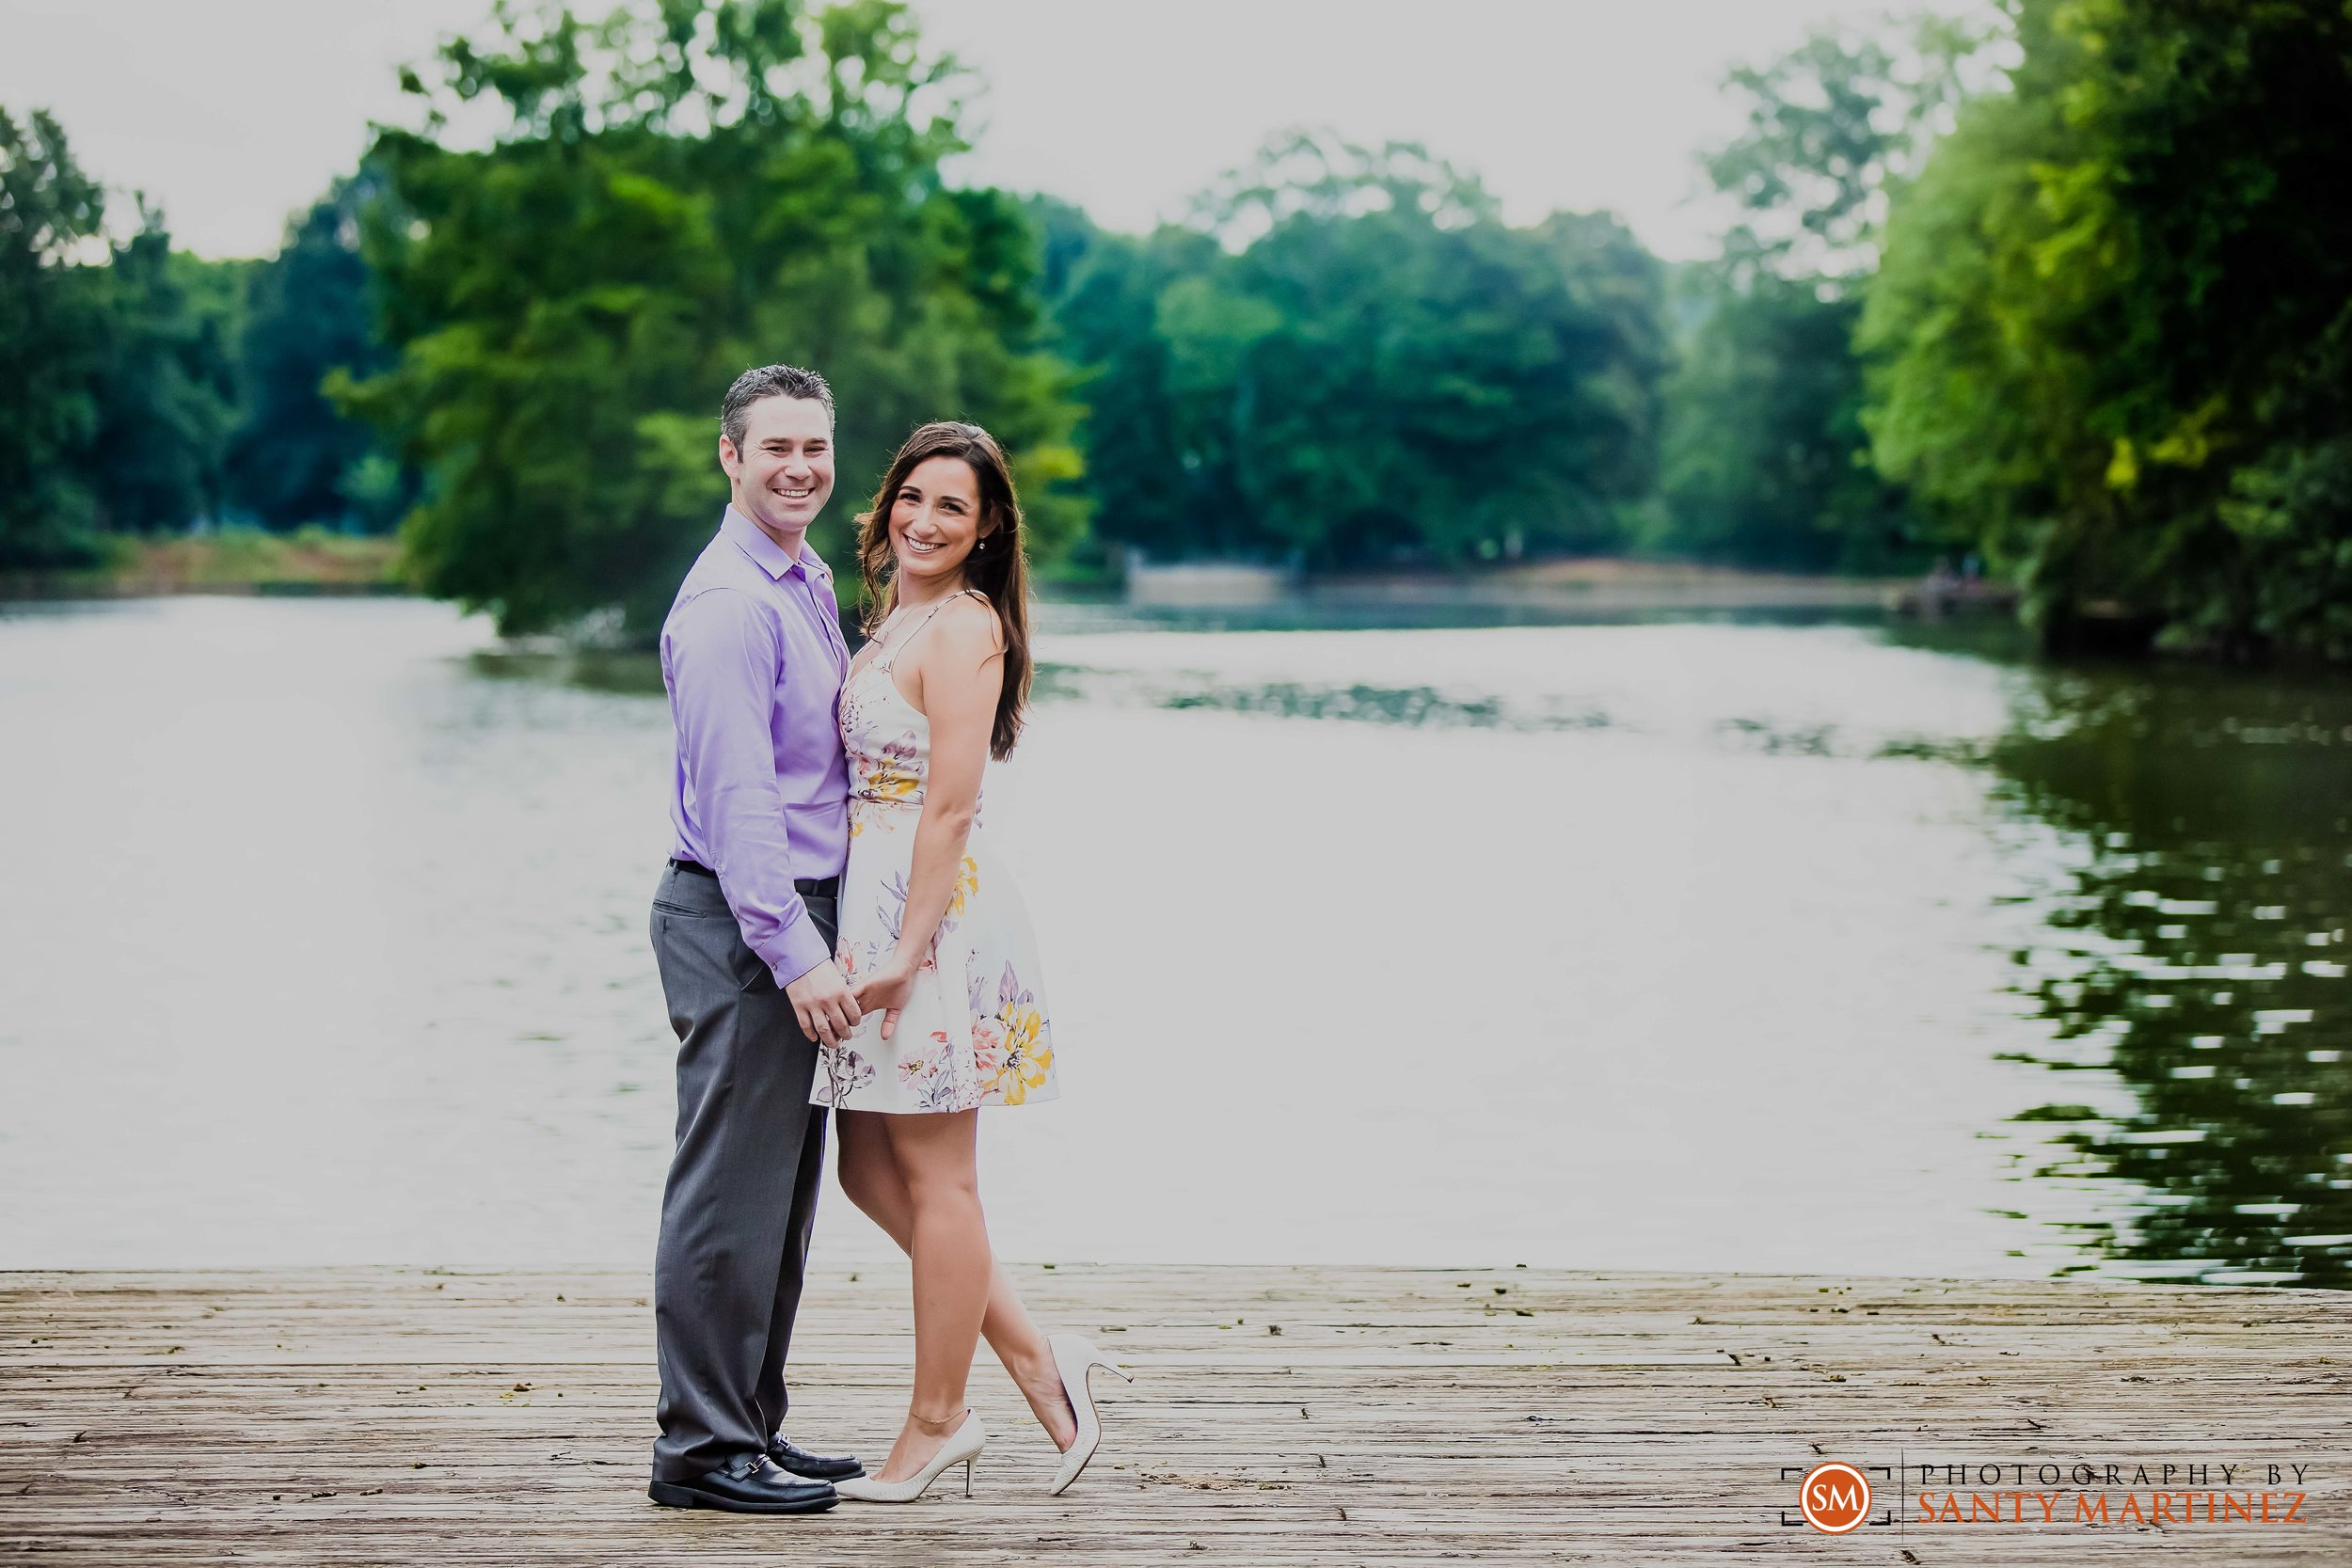 Engagement Session Piedmont Park - Santy Martinez Photography.jpg